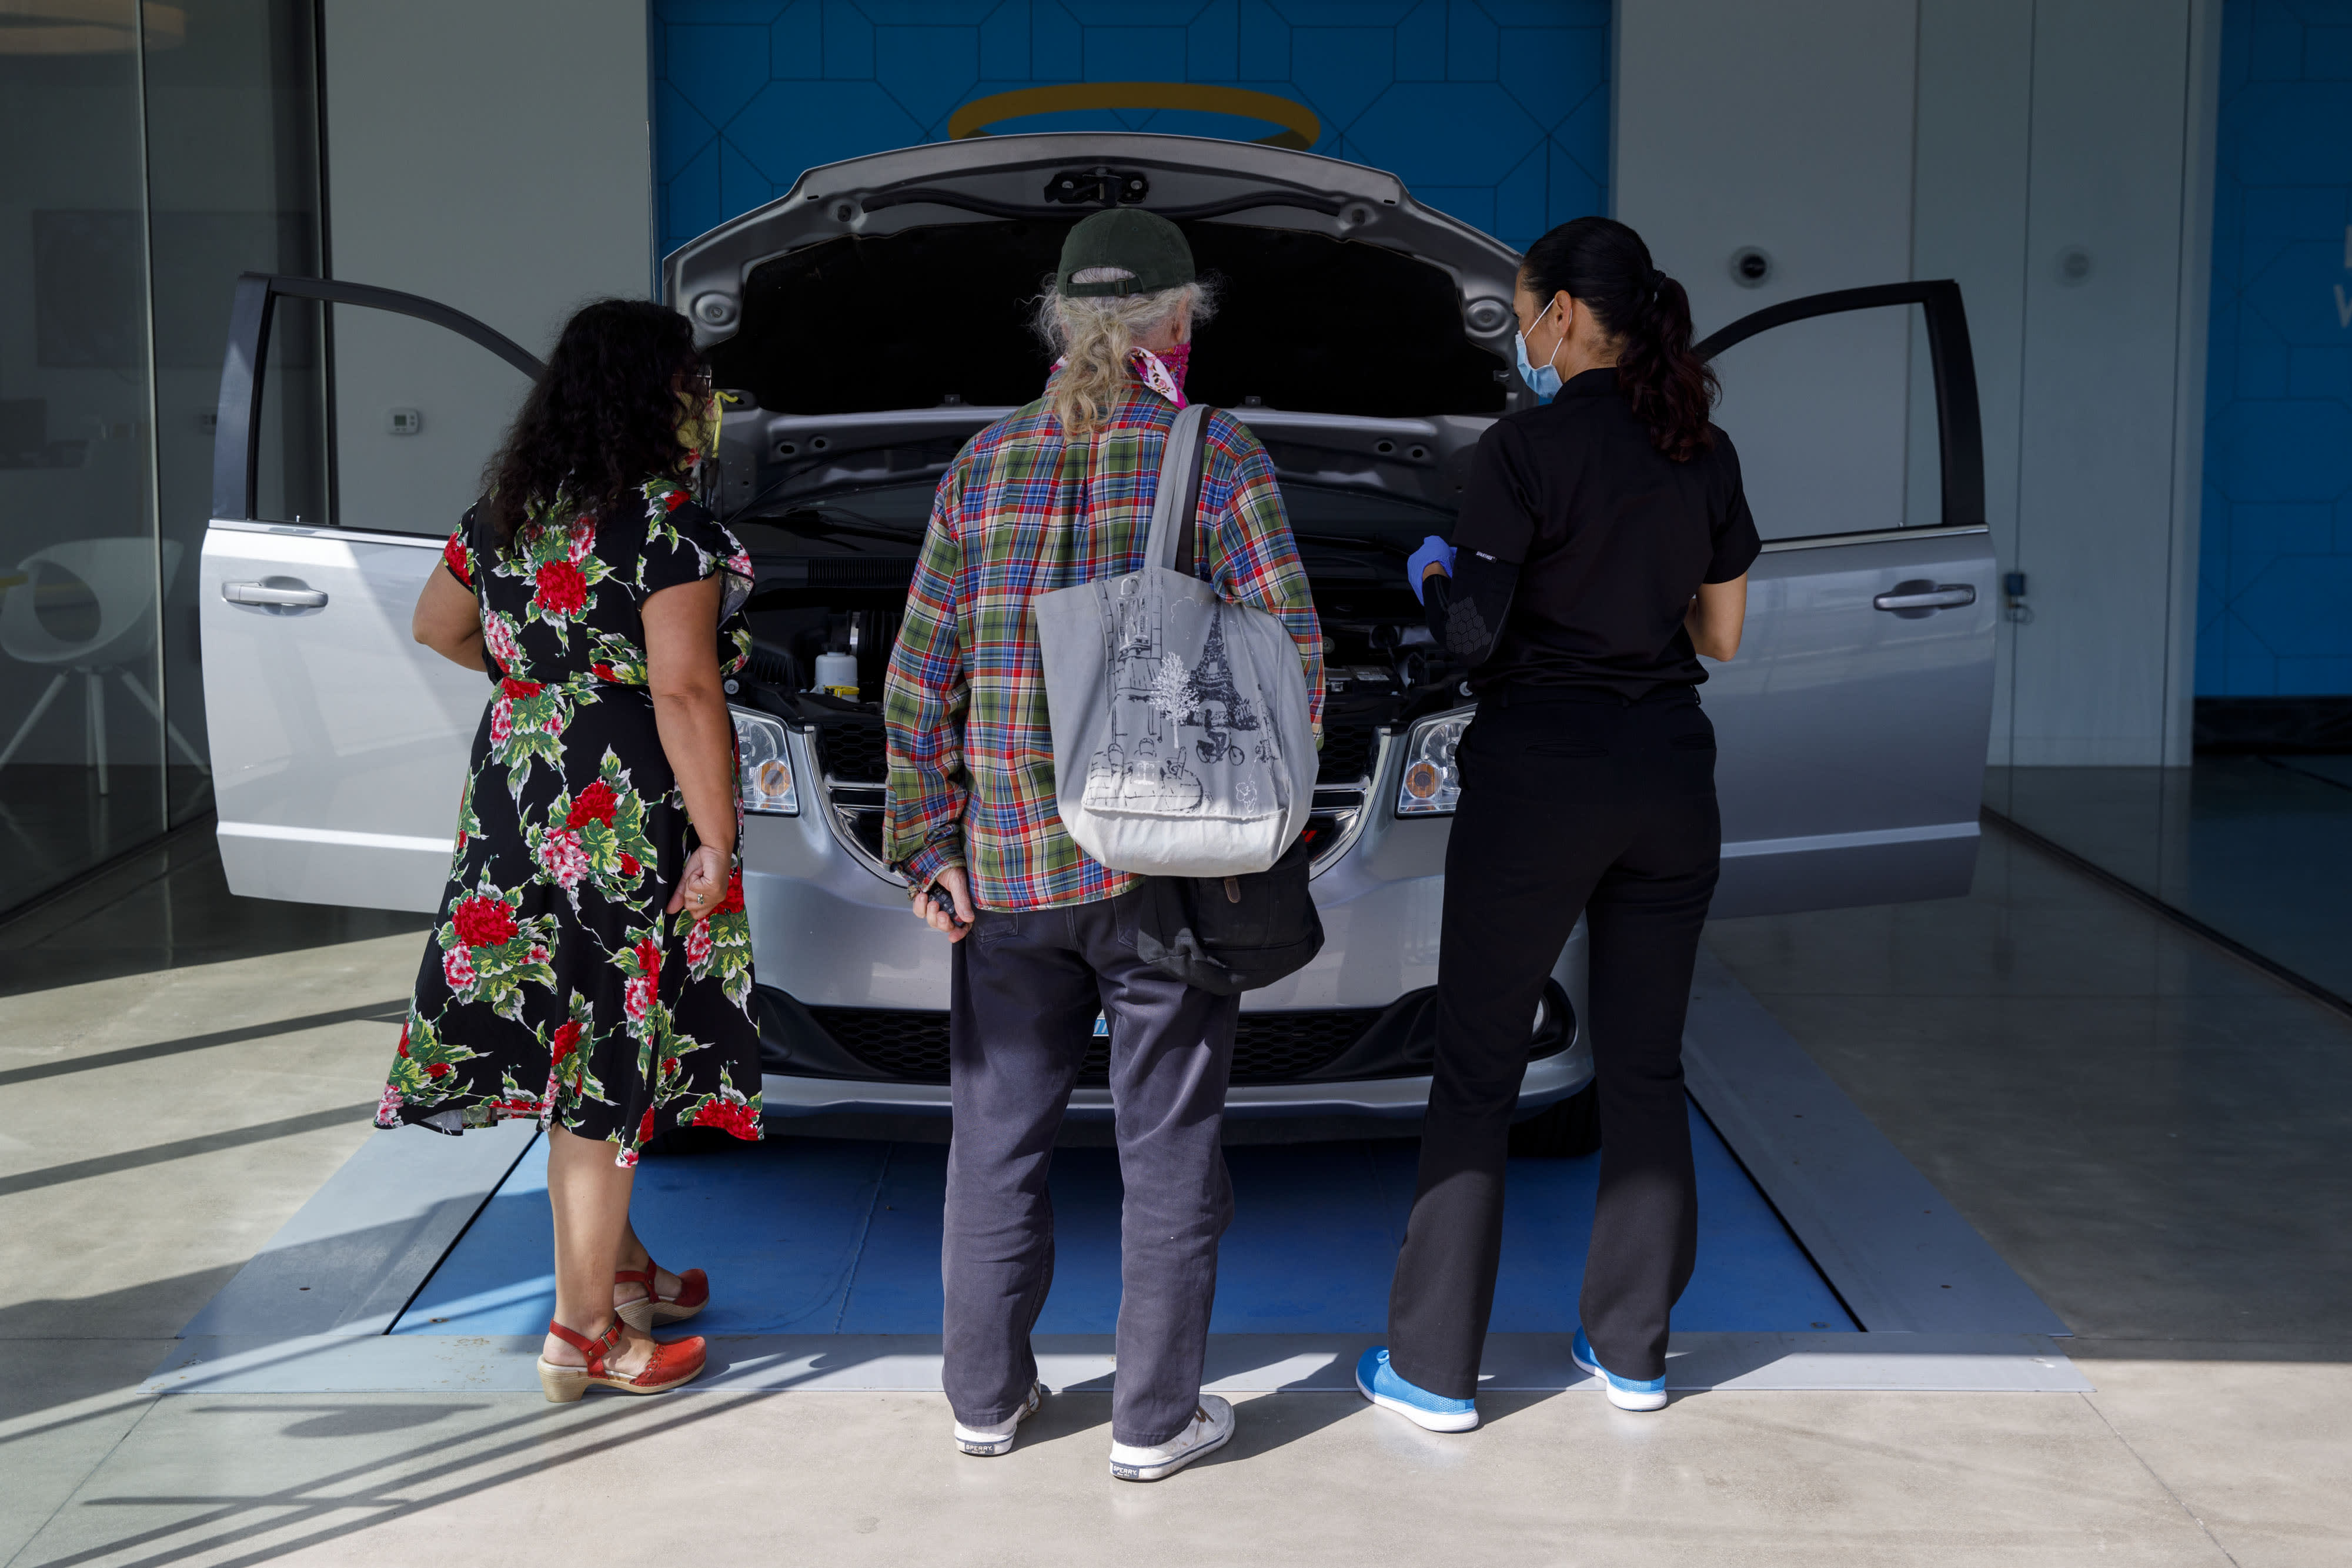 Auto loan payments soared to yet another record in the first quarter